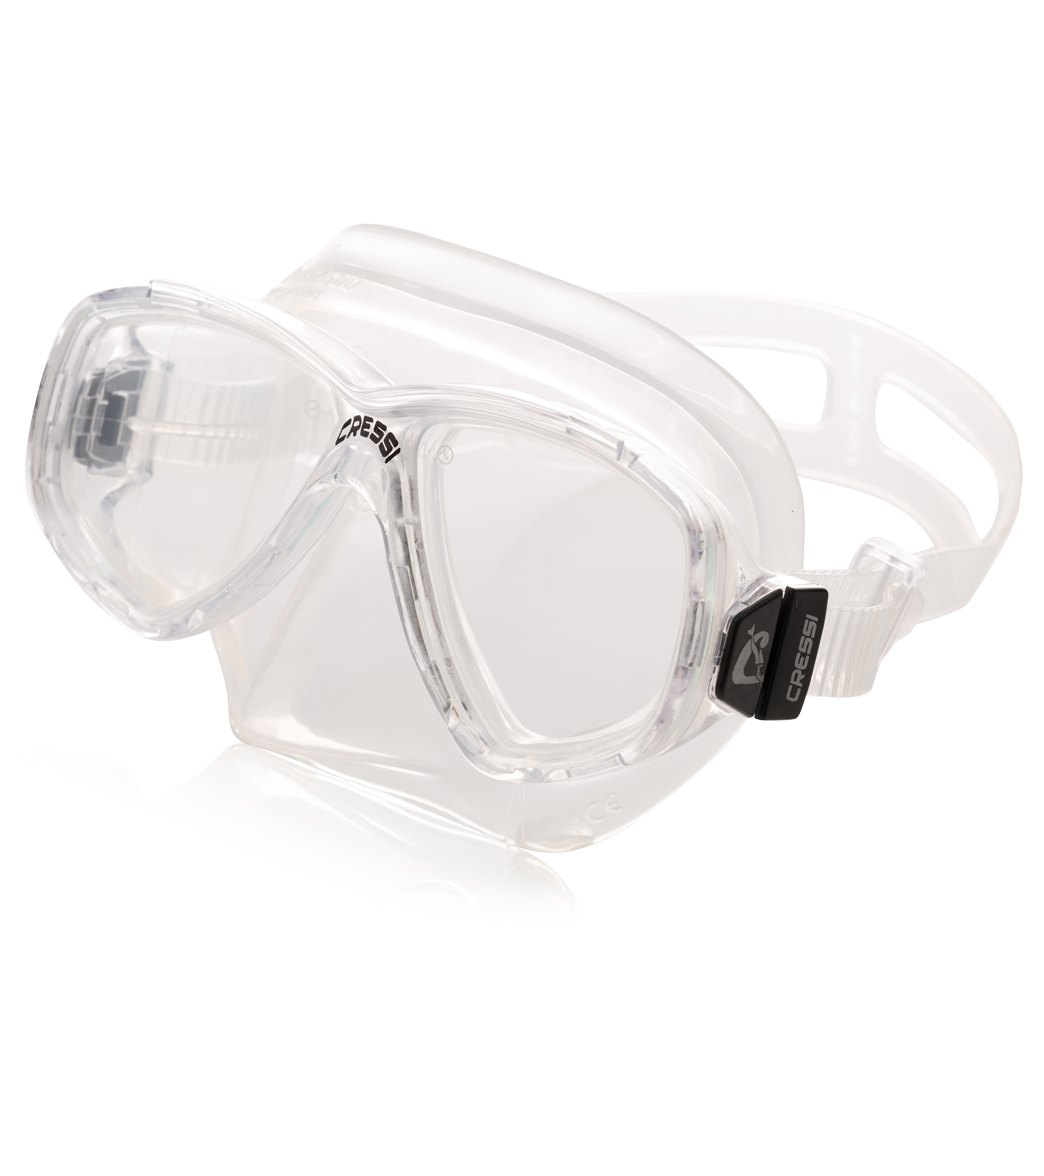 cf96a074623 Cressi Perla Mask at SwimOutlet.com